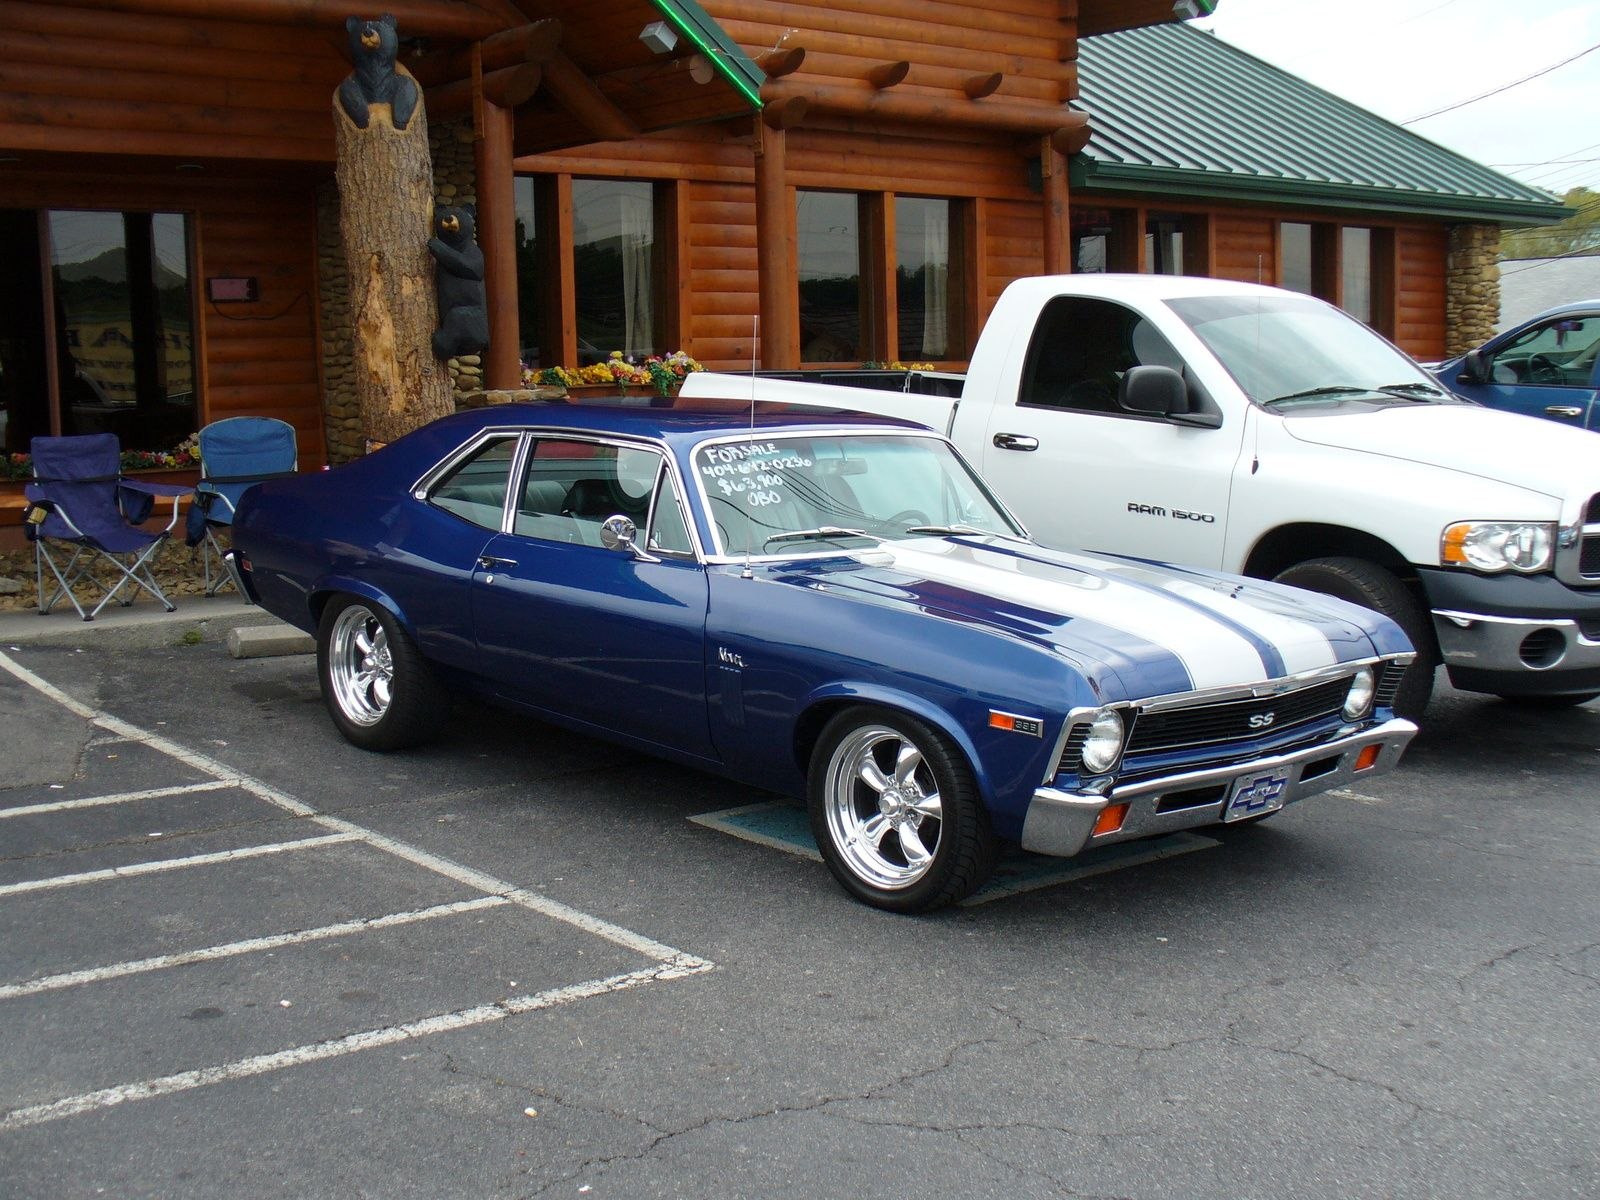 1969 chevrolet nova ss like the blue with white stripes and the rims nice